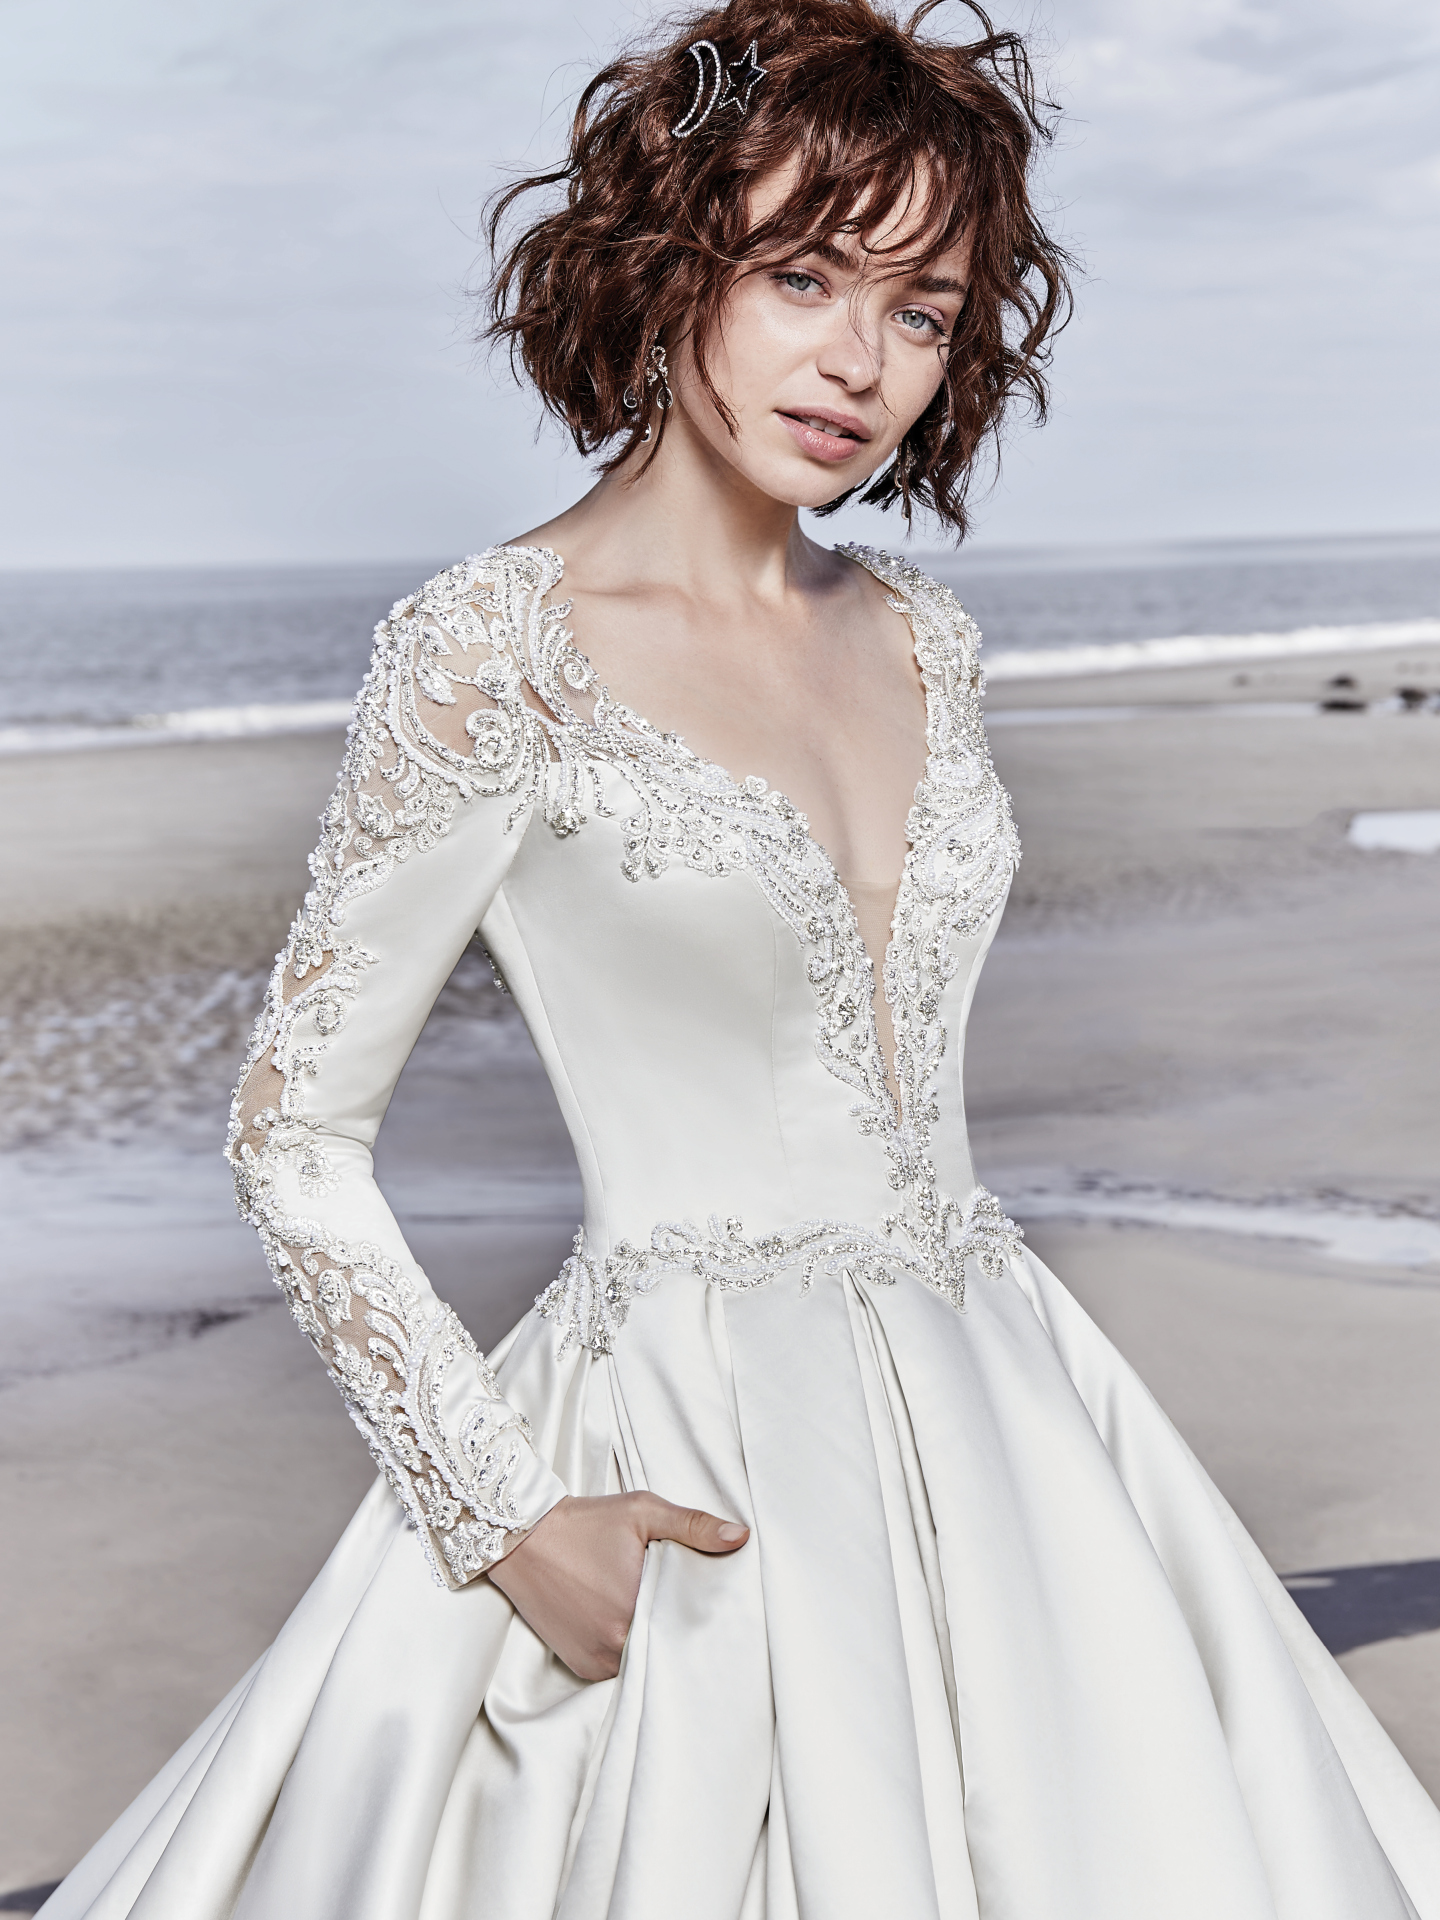 The Latest Glitzy, Red-Carpet-Ready Styles from Sottero and Midgley - Brennon